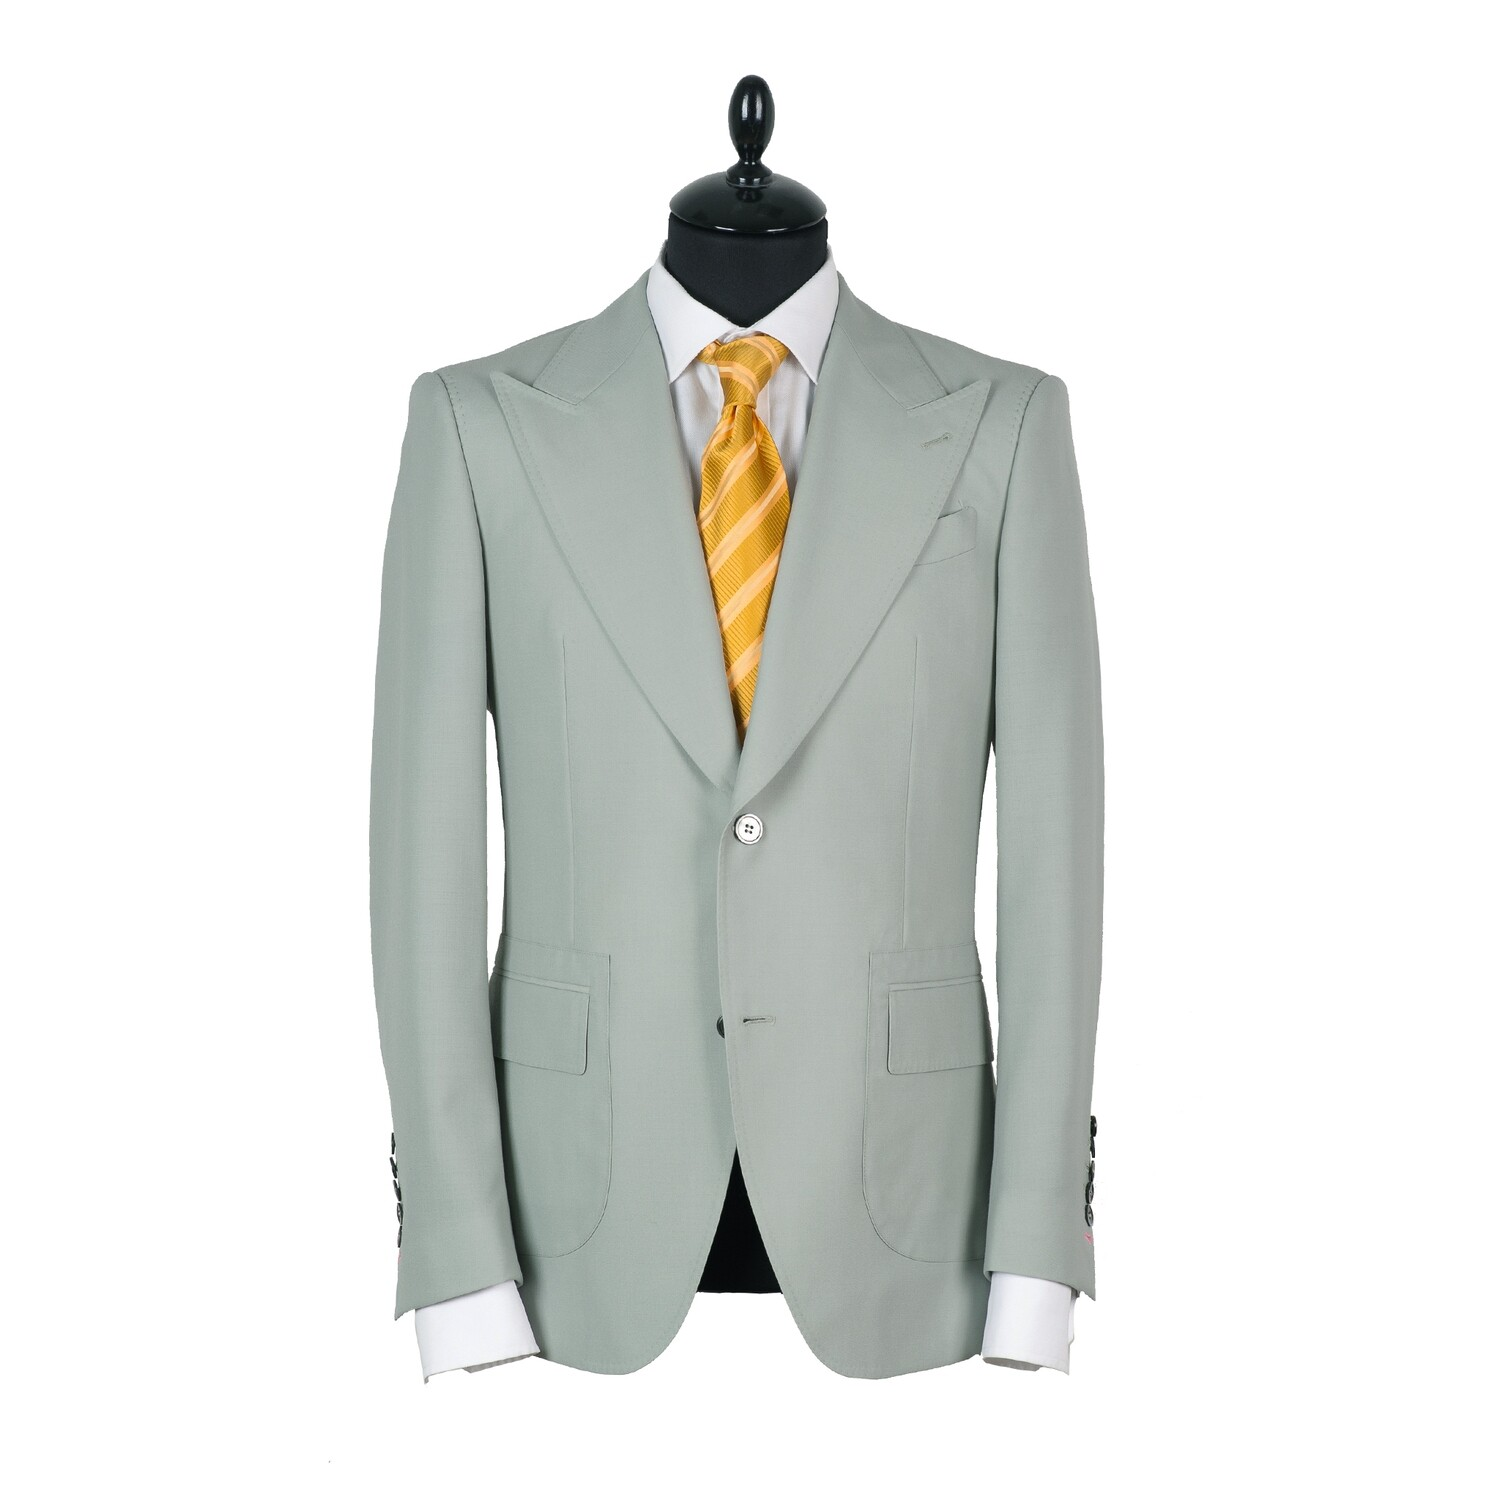 Green single breasted suit. Havana collection